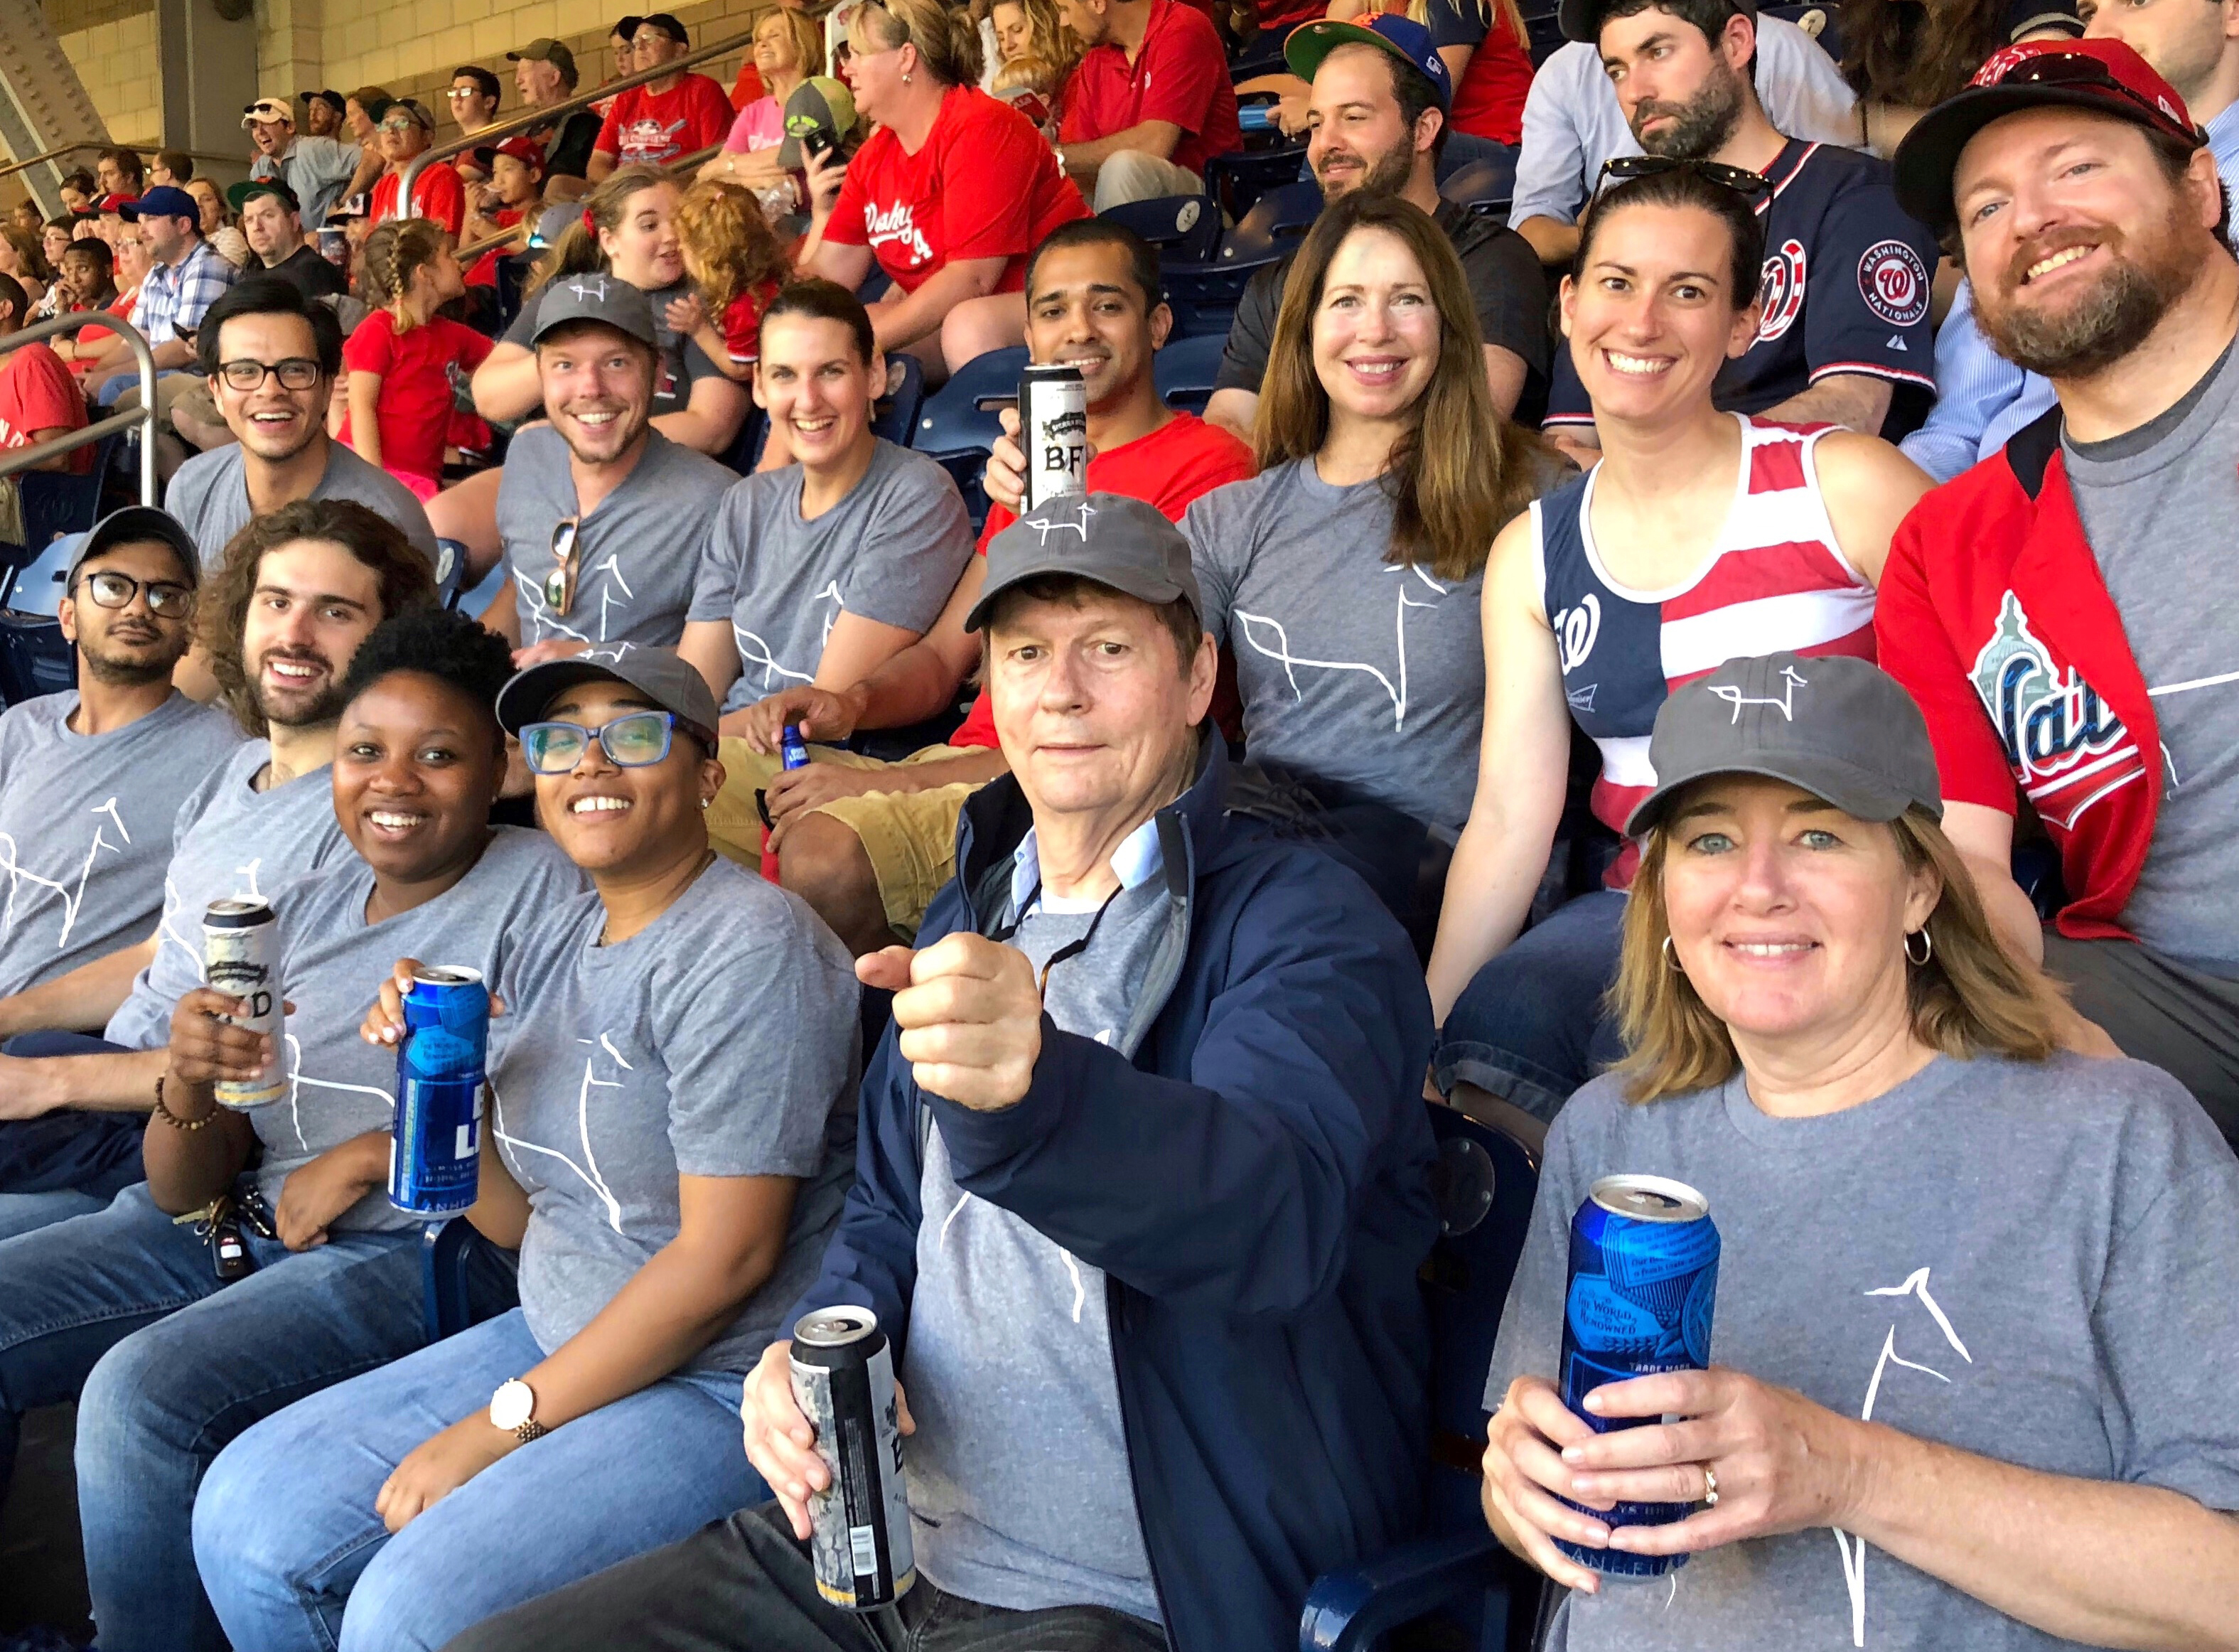 Smiling faces of Blackburn employees at a Nationals baseball game